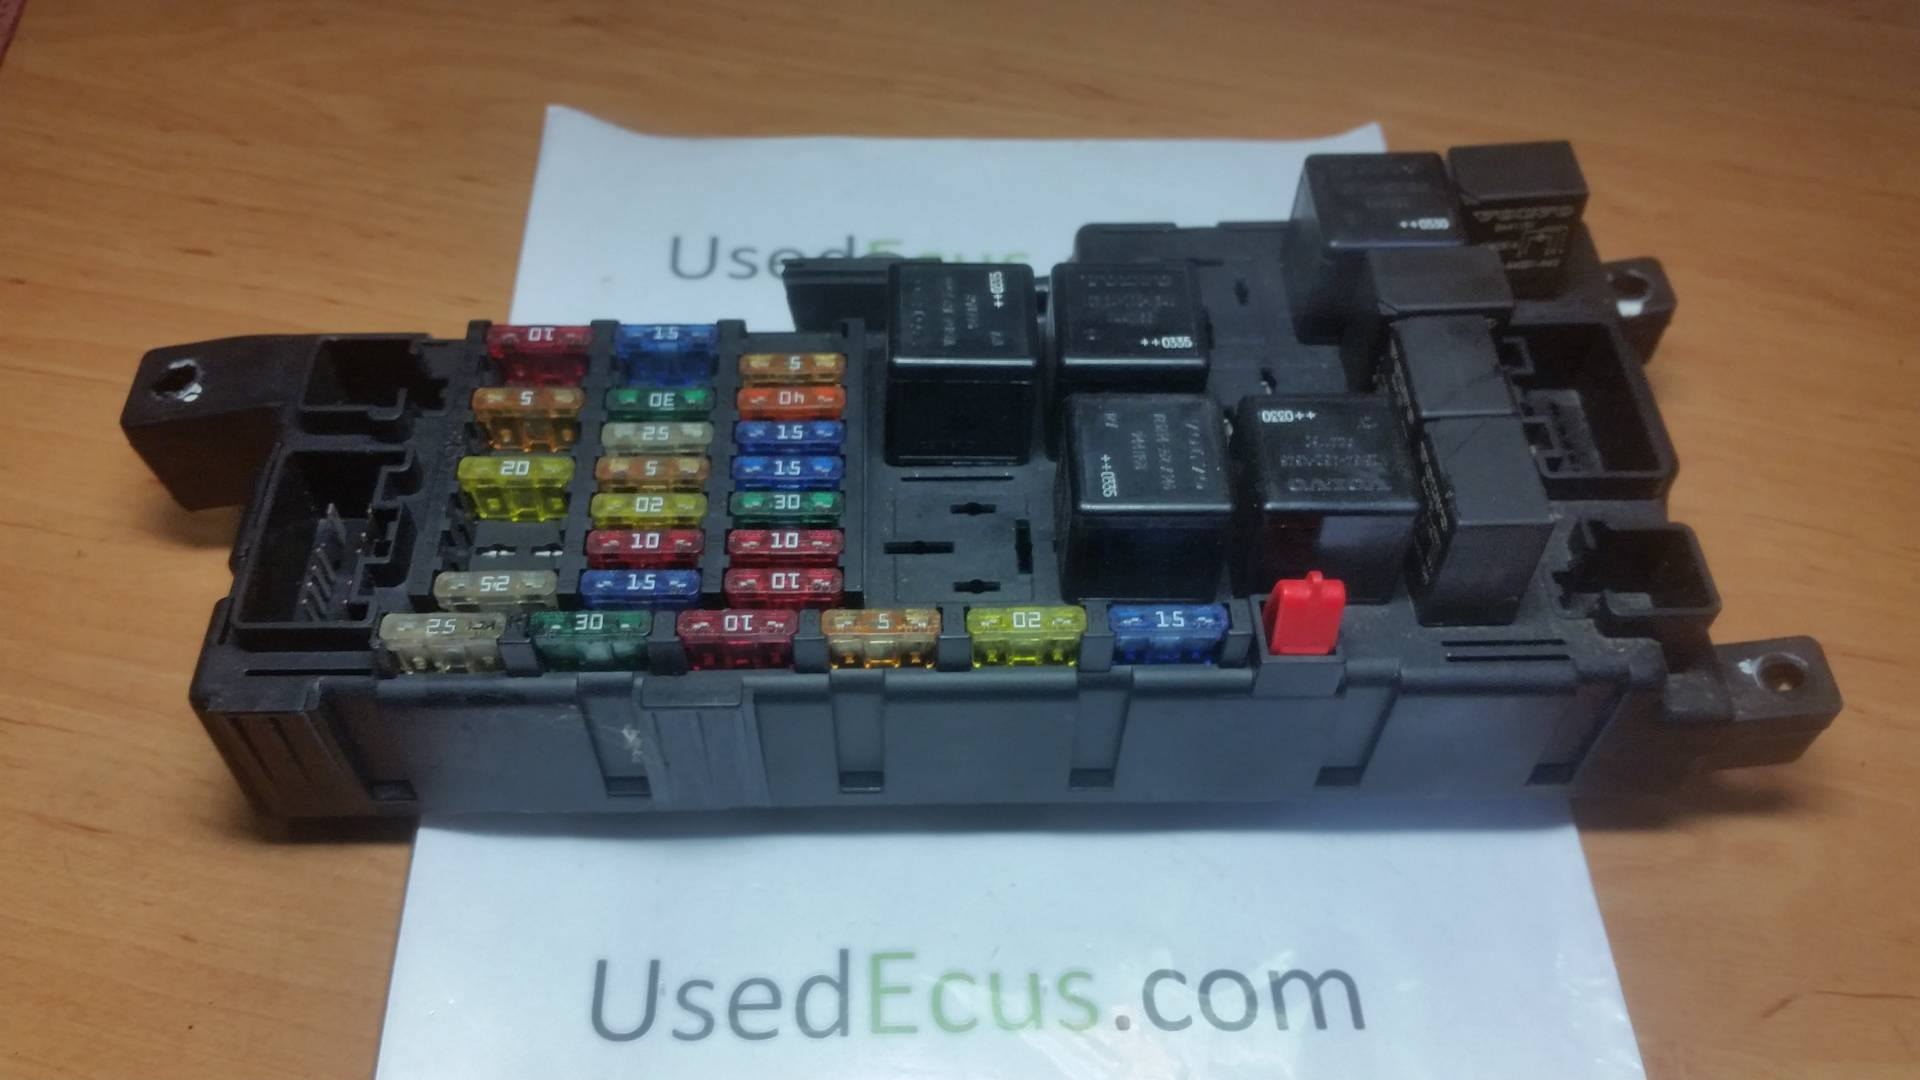 Volvo V60 Fuse Box Auto Electrical Wiring Diagram 08 Yaris 2010 Xc60 Toyota